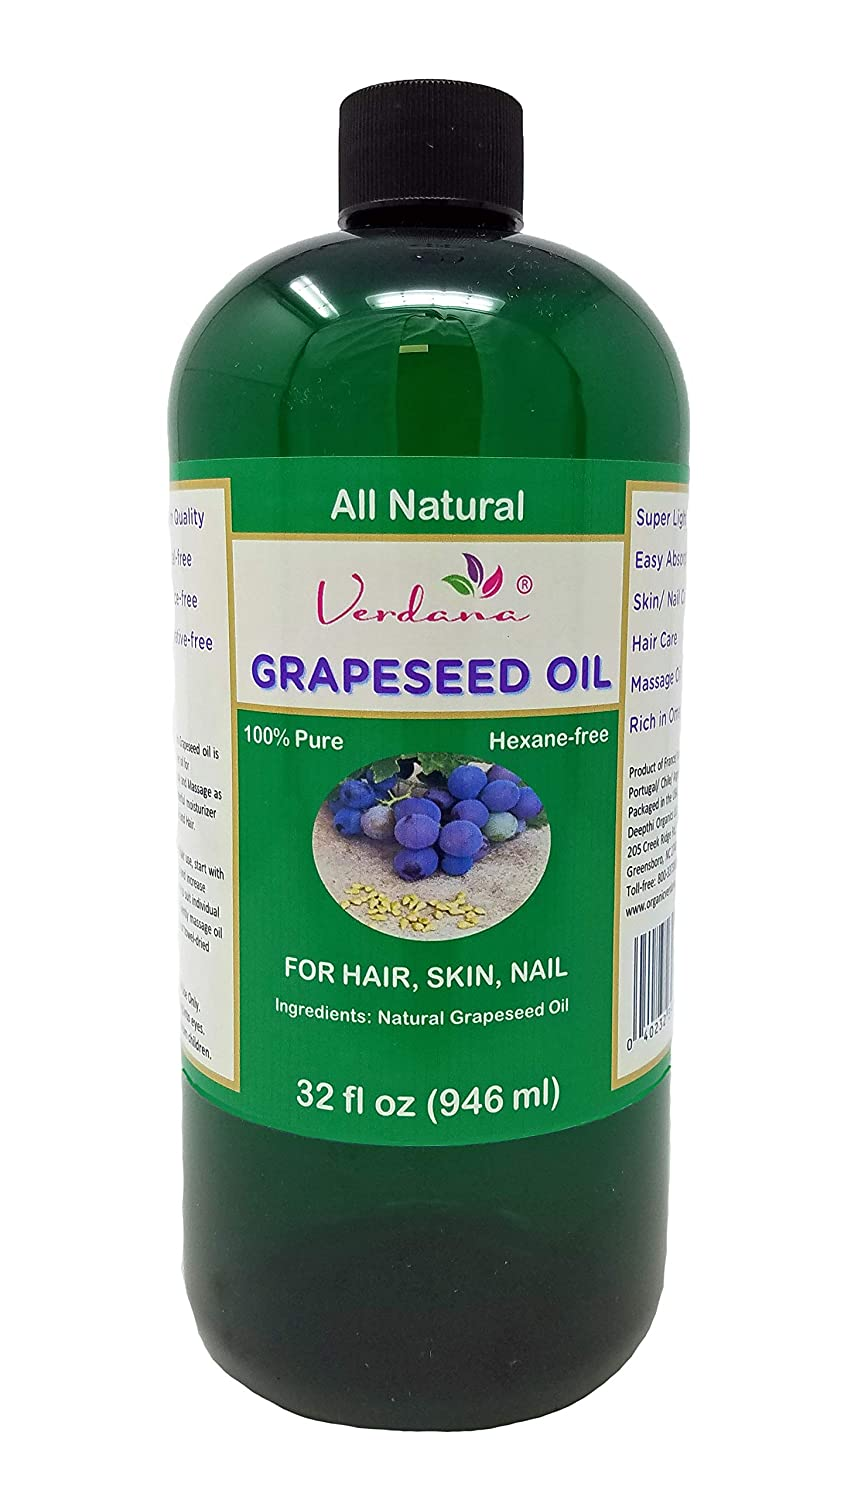 Verdana Grapeseed Oil – Essential for Silky Hair, Skin, Face & Nails – Care for Sensitive Skin – Super Light - All Natural, Hexane-Free - Use for Massage, Moisturizer, Body Lotion, Carrier (32 Fl Oz)